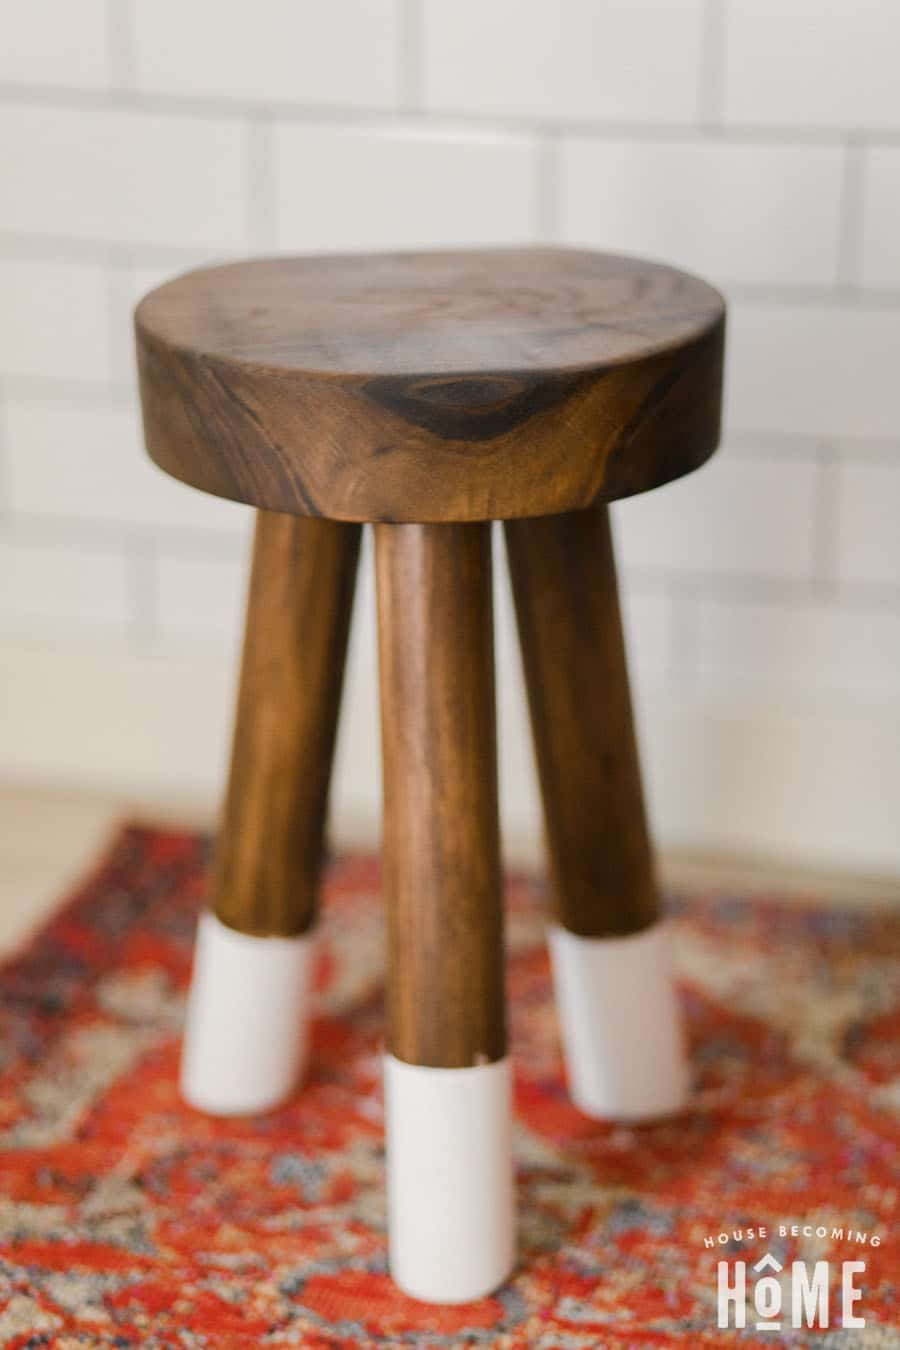 Marvelous How To Make A Diy Dip Dyed Stool Out Of Walnut Scraps And Dowels Machost Co Dining Chair Design Ideas Machostcouk